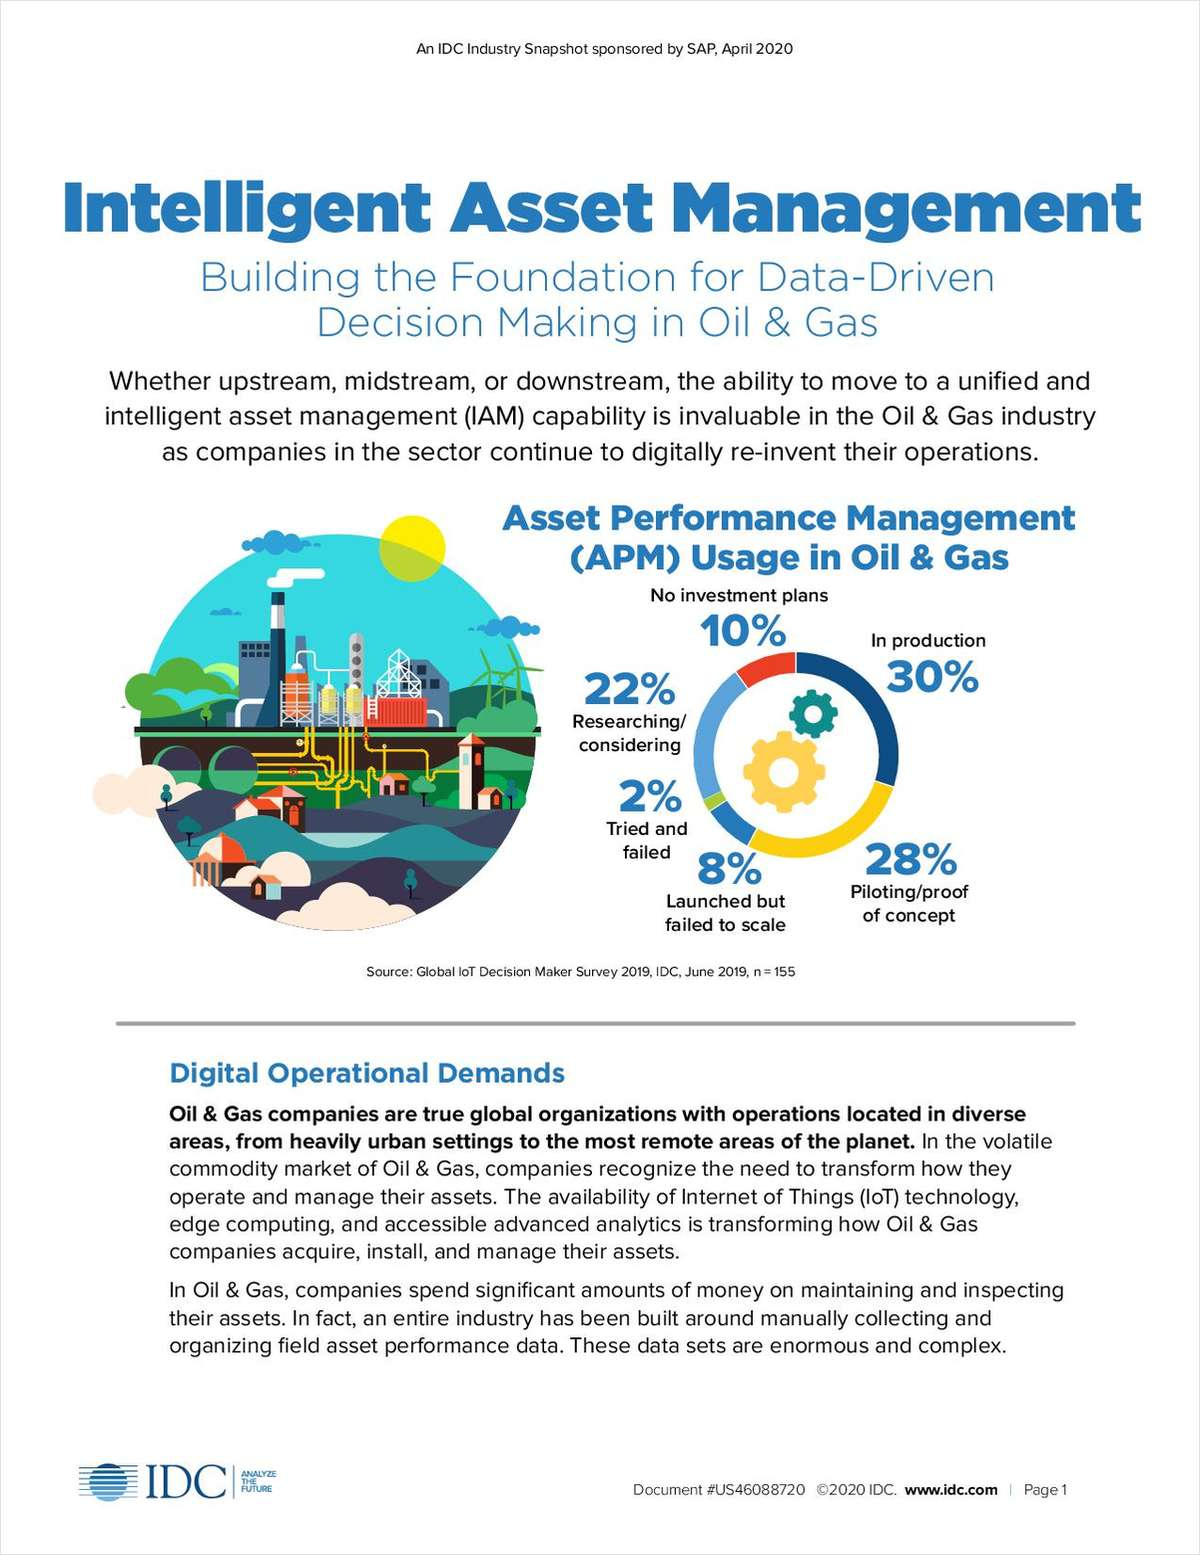 IDC Industry Snapshot: Intelligent Asset Management: Building the Foundation for Data-Driven Decision-Making  in Oil & Gas